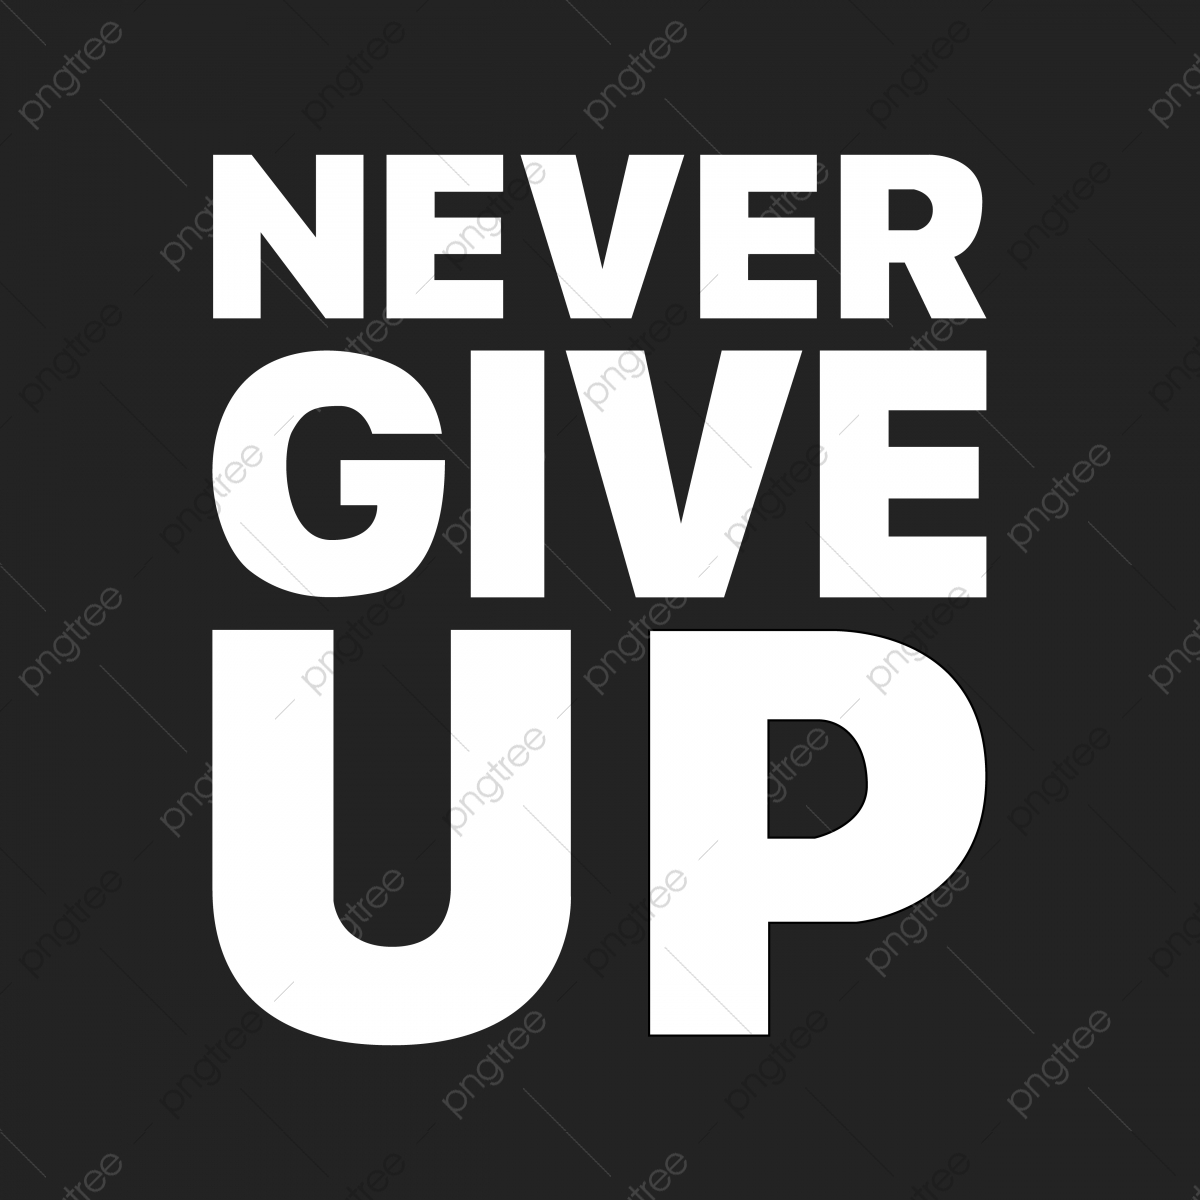 The Never Give Up Sentence That Was Popularized By One Soccer Player From Liverpool Font Effect EPS For Free Download